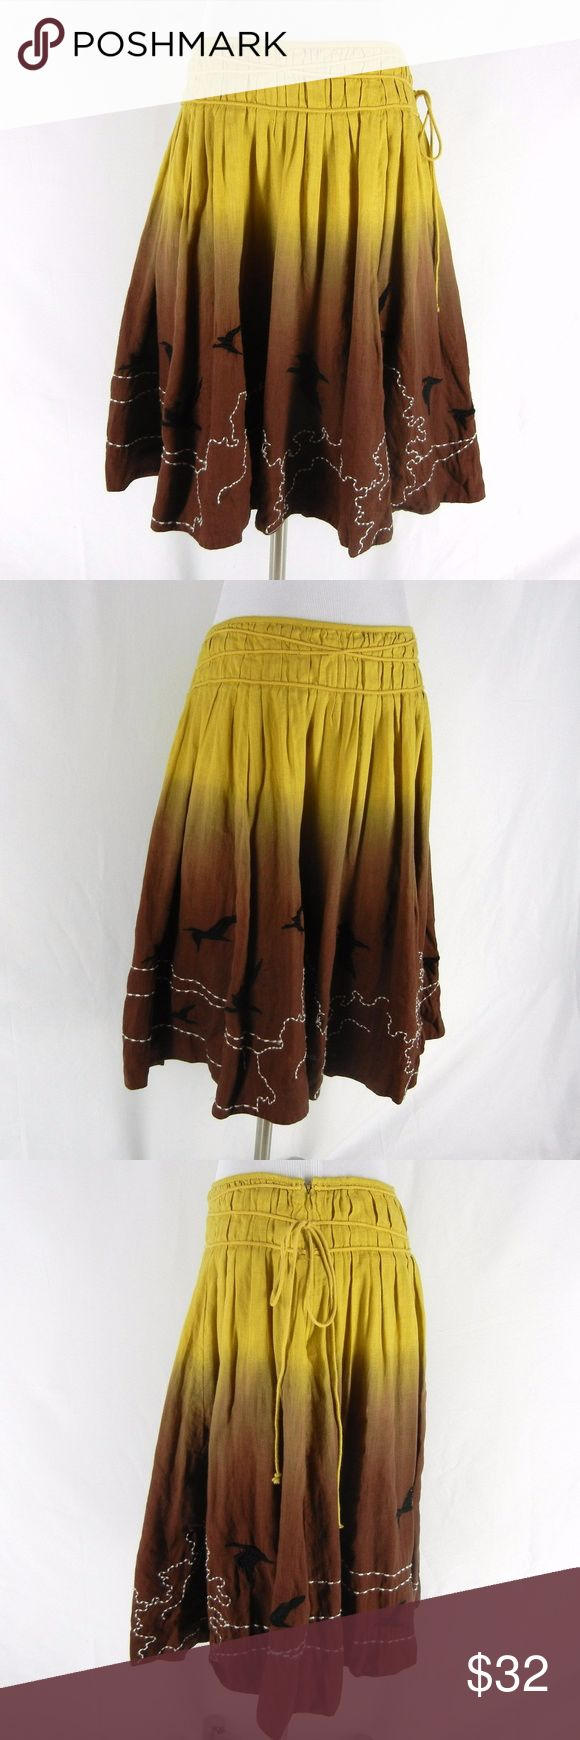 """LITHE Anthropologie Pleated Ombre Linen Skirt 12 LITHE by Anthropologie stylish 100% linen full pleated skirt.  Ombre effect, embroidered flying birds design, fully lined, flat waist, side zip, no pockets.  Excellent condition with no flaws.  Dry clean only.  Tagged Size 12, please check measurements to determine fit.  34"""" waist, 50"""" hips, 24"""" long. Lithe Skirts A-Line or Full"""